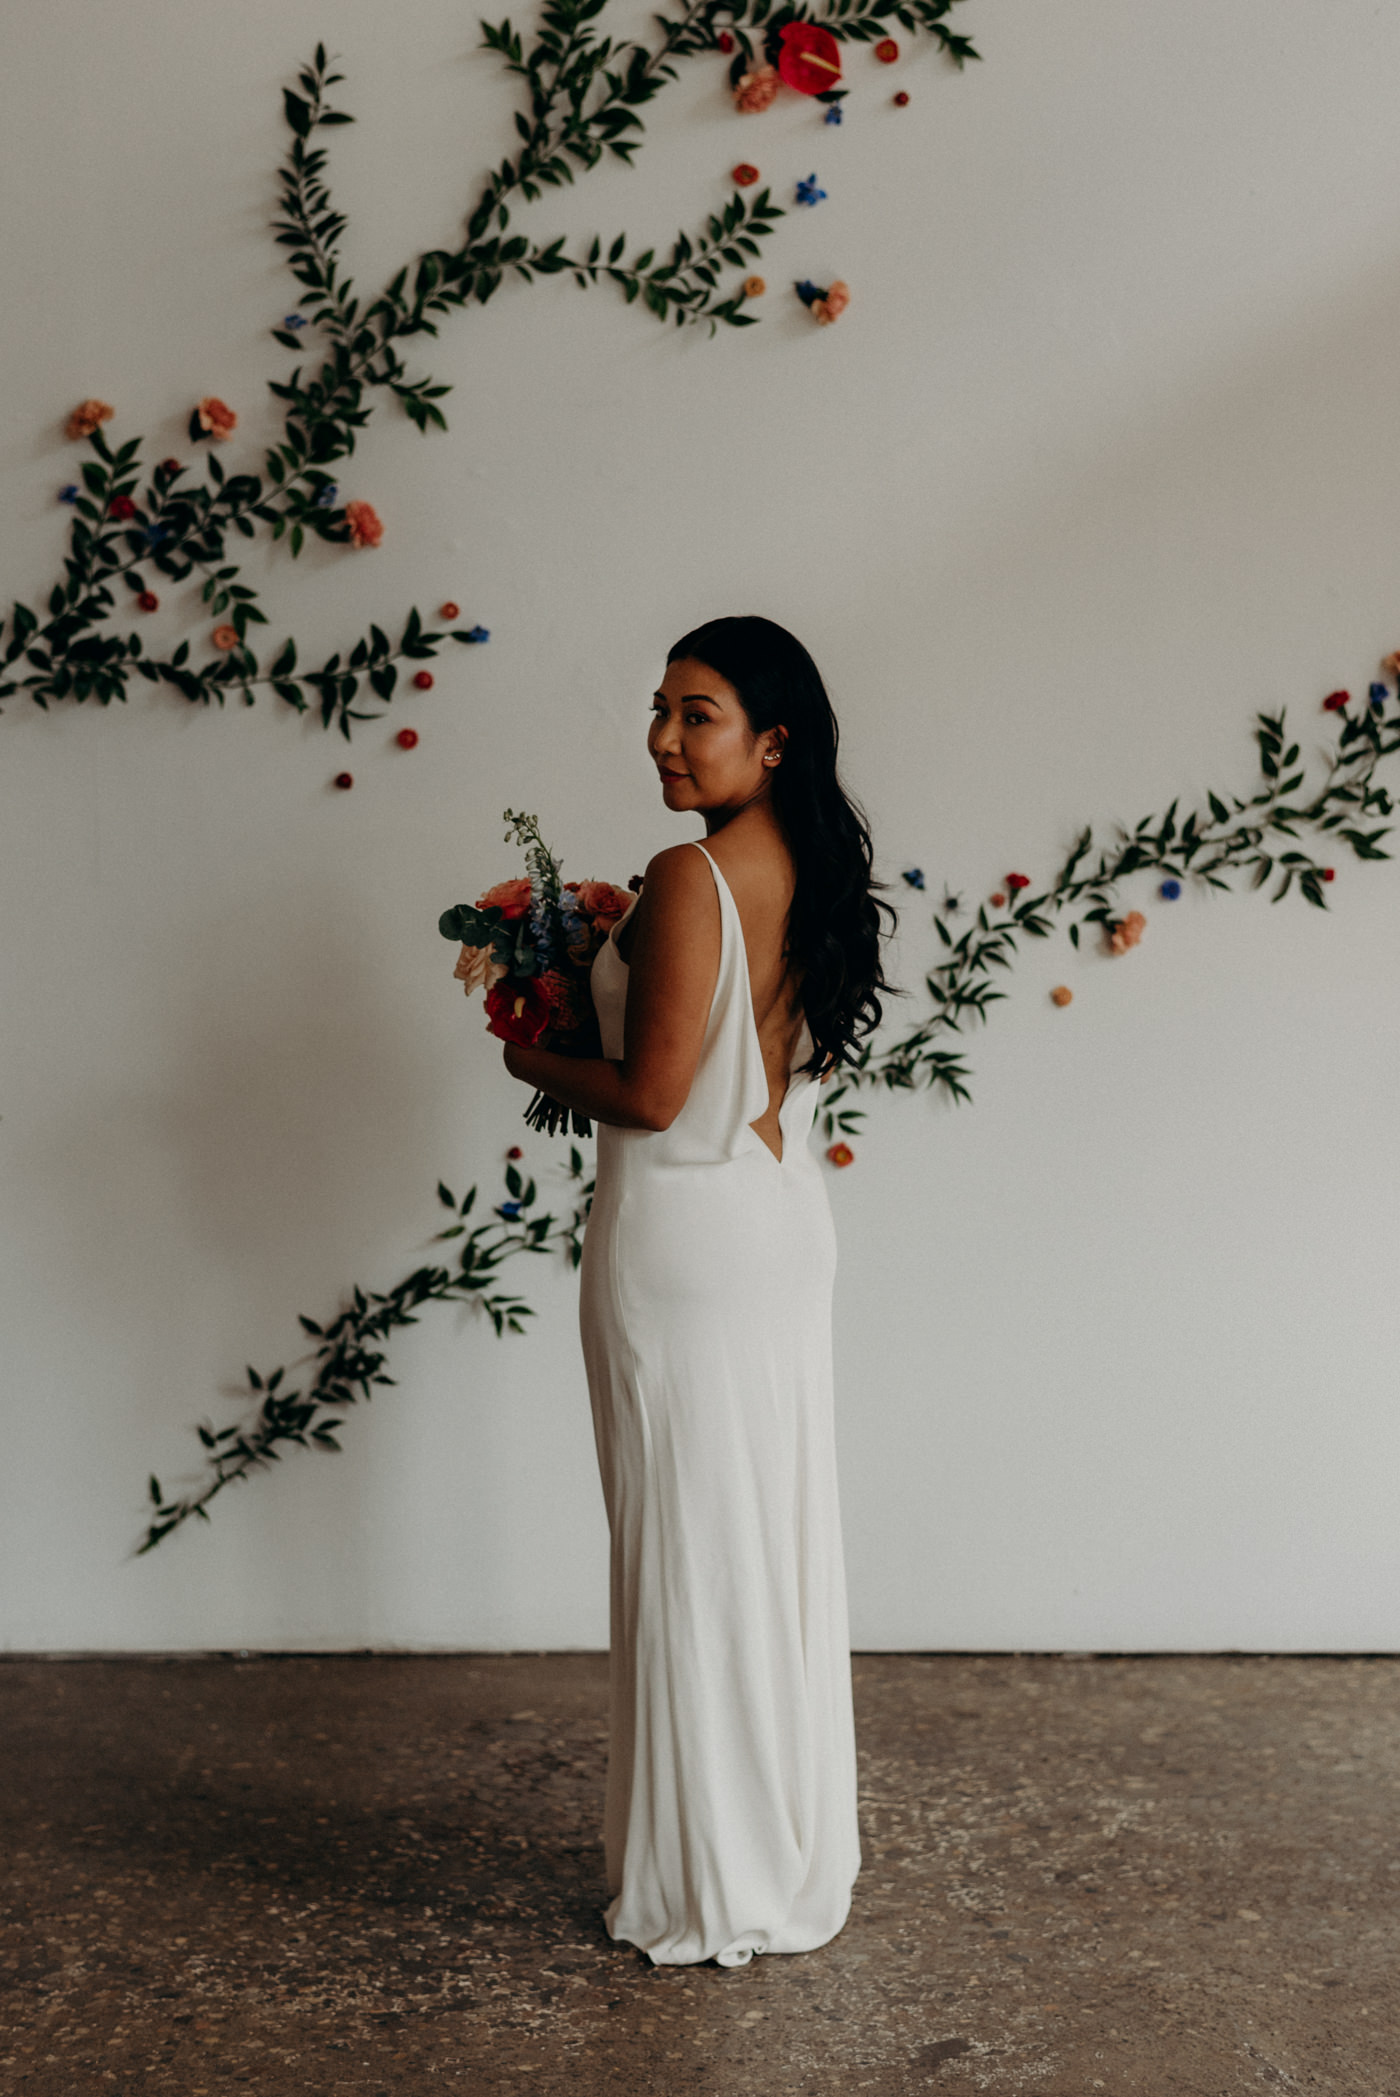 Bride in front of floral wall at Airship37 Wedding